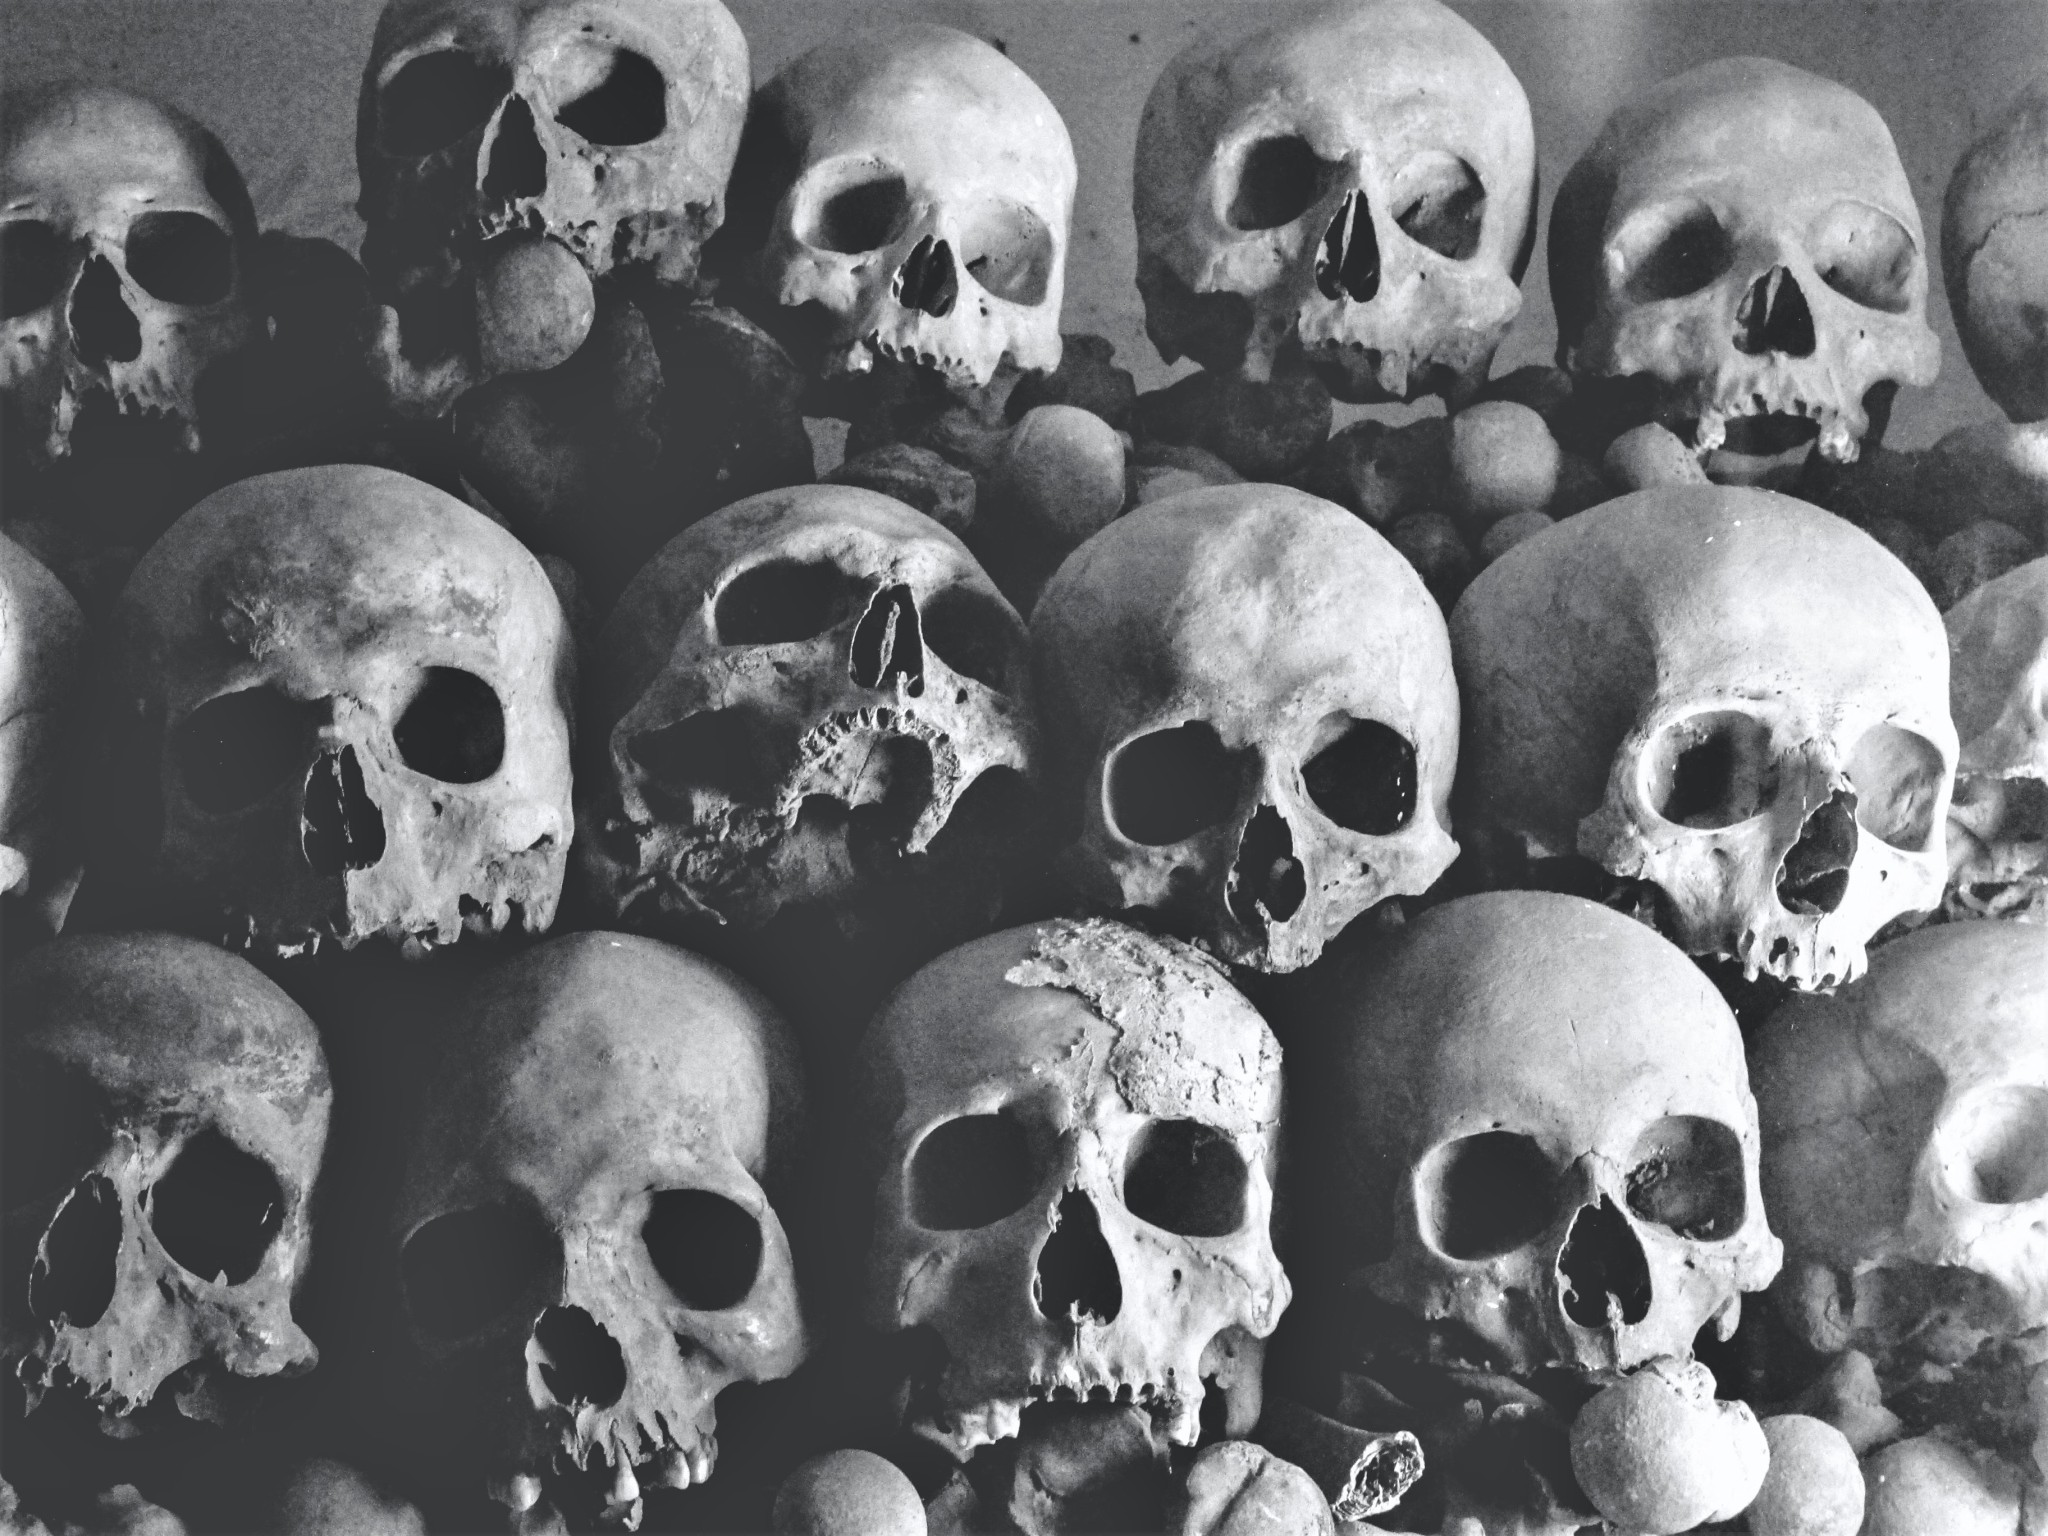 Three rows of human skulls and bones representing murder and death.